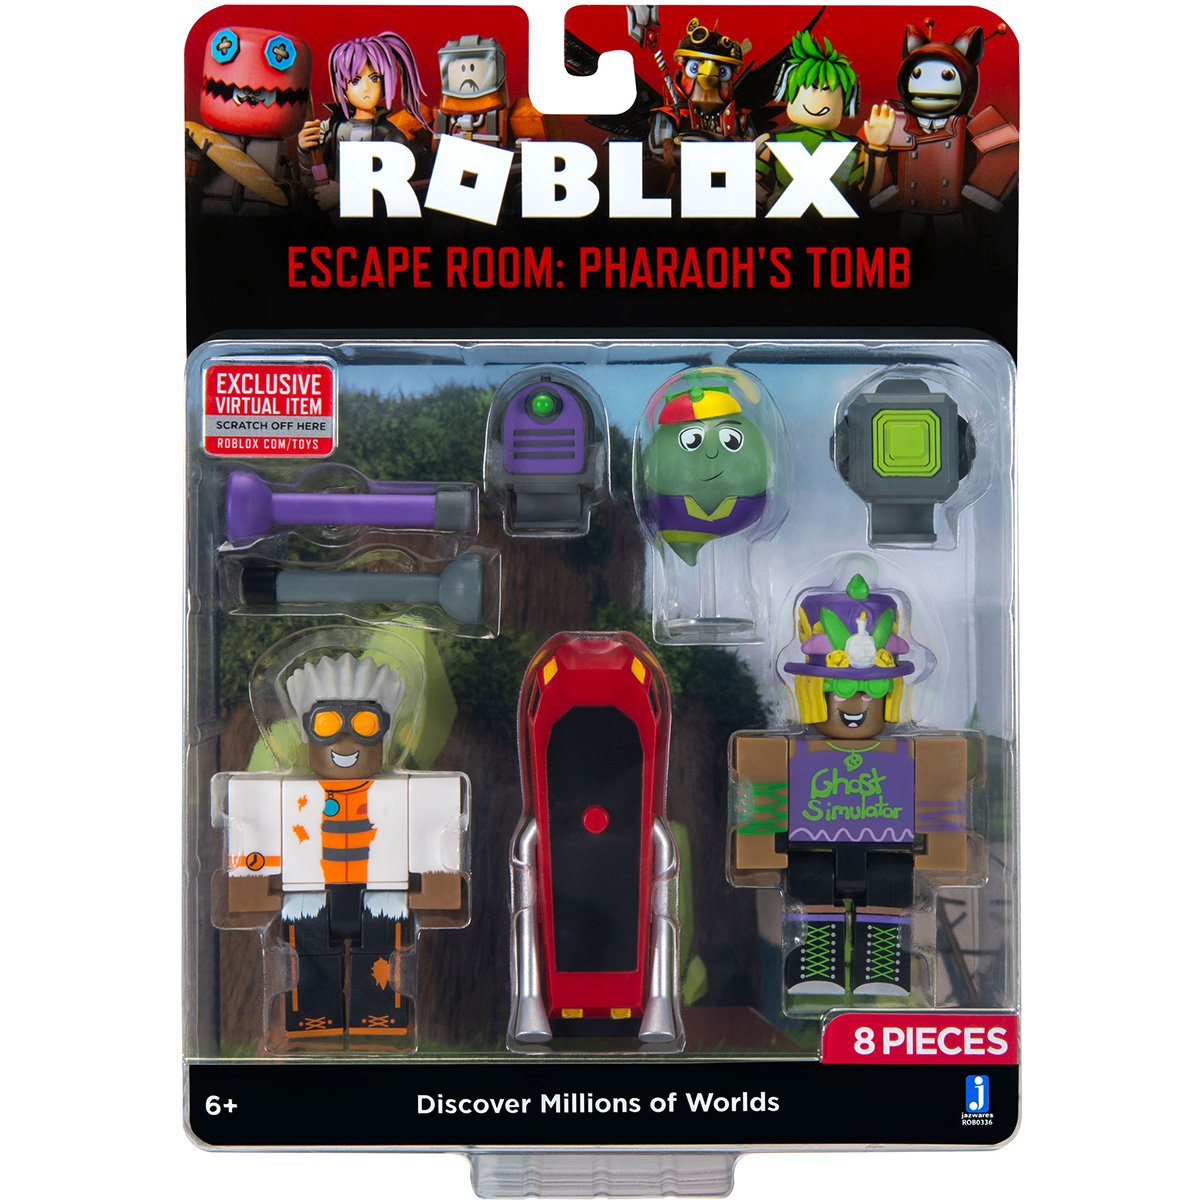 Set 2 figurine Roblox, Ghost Simulator, Escape Room Pharaoh's Tomb, S8